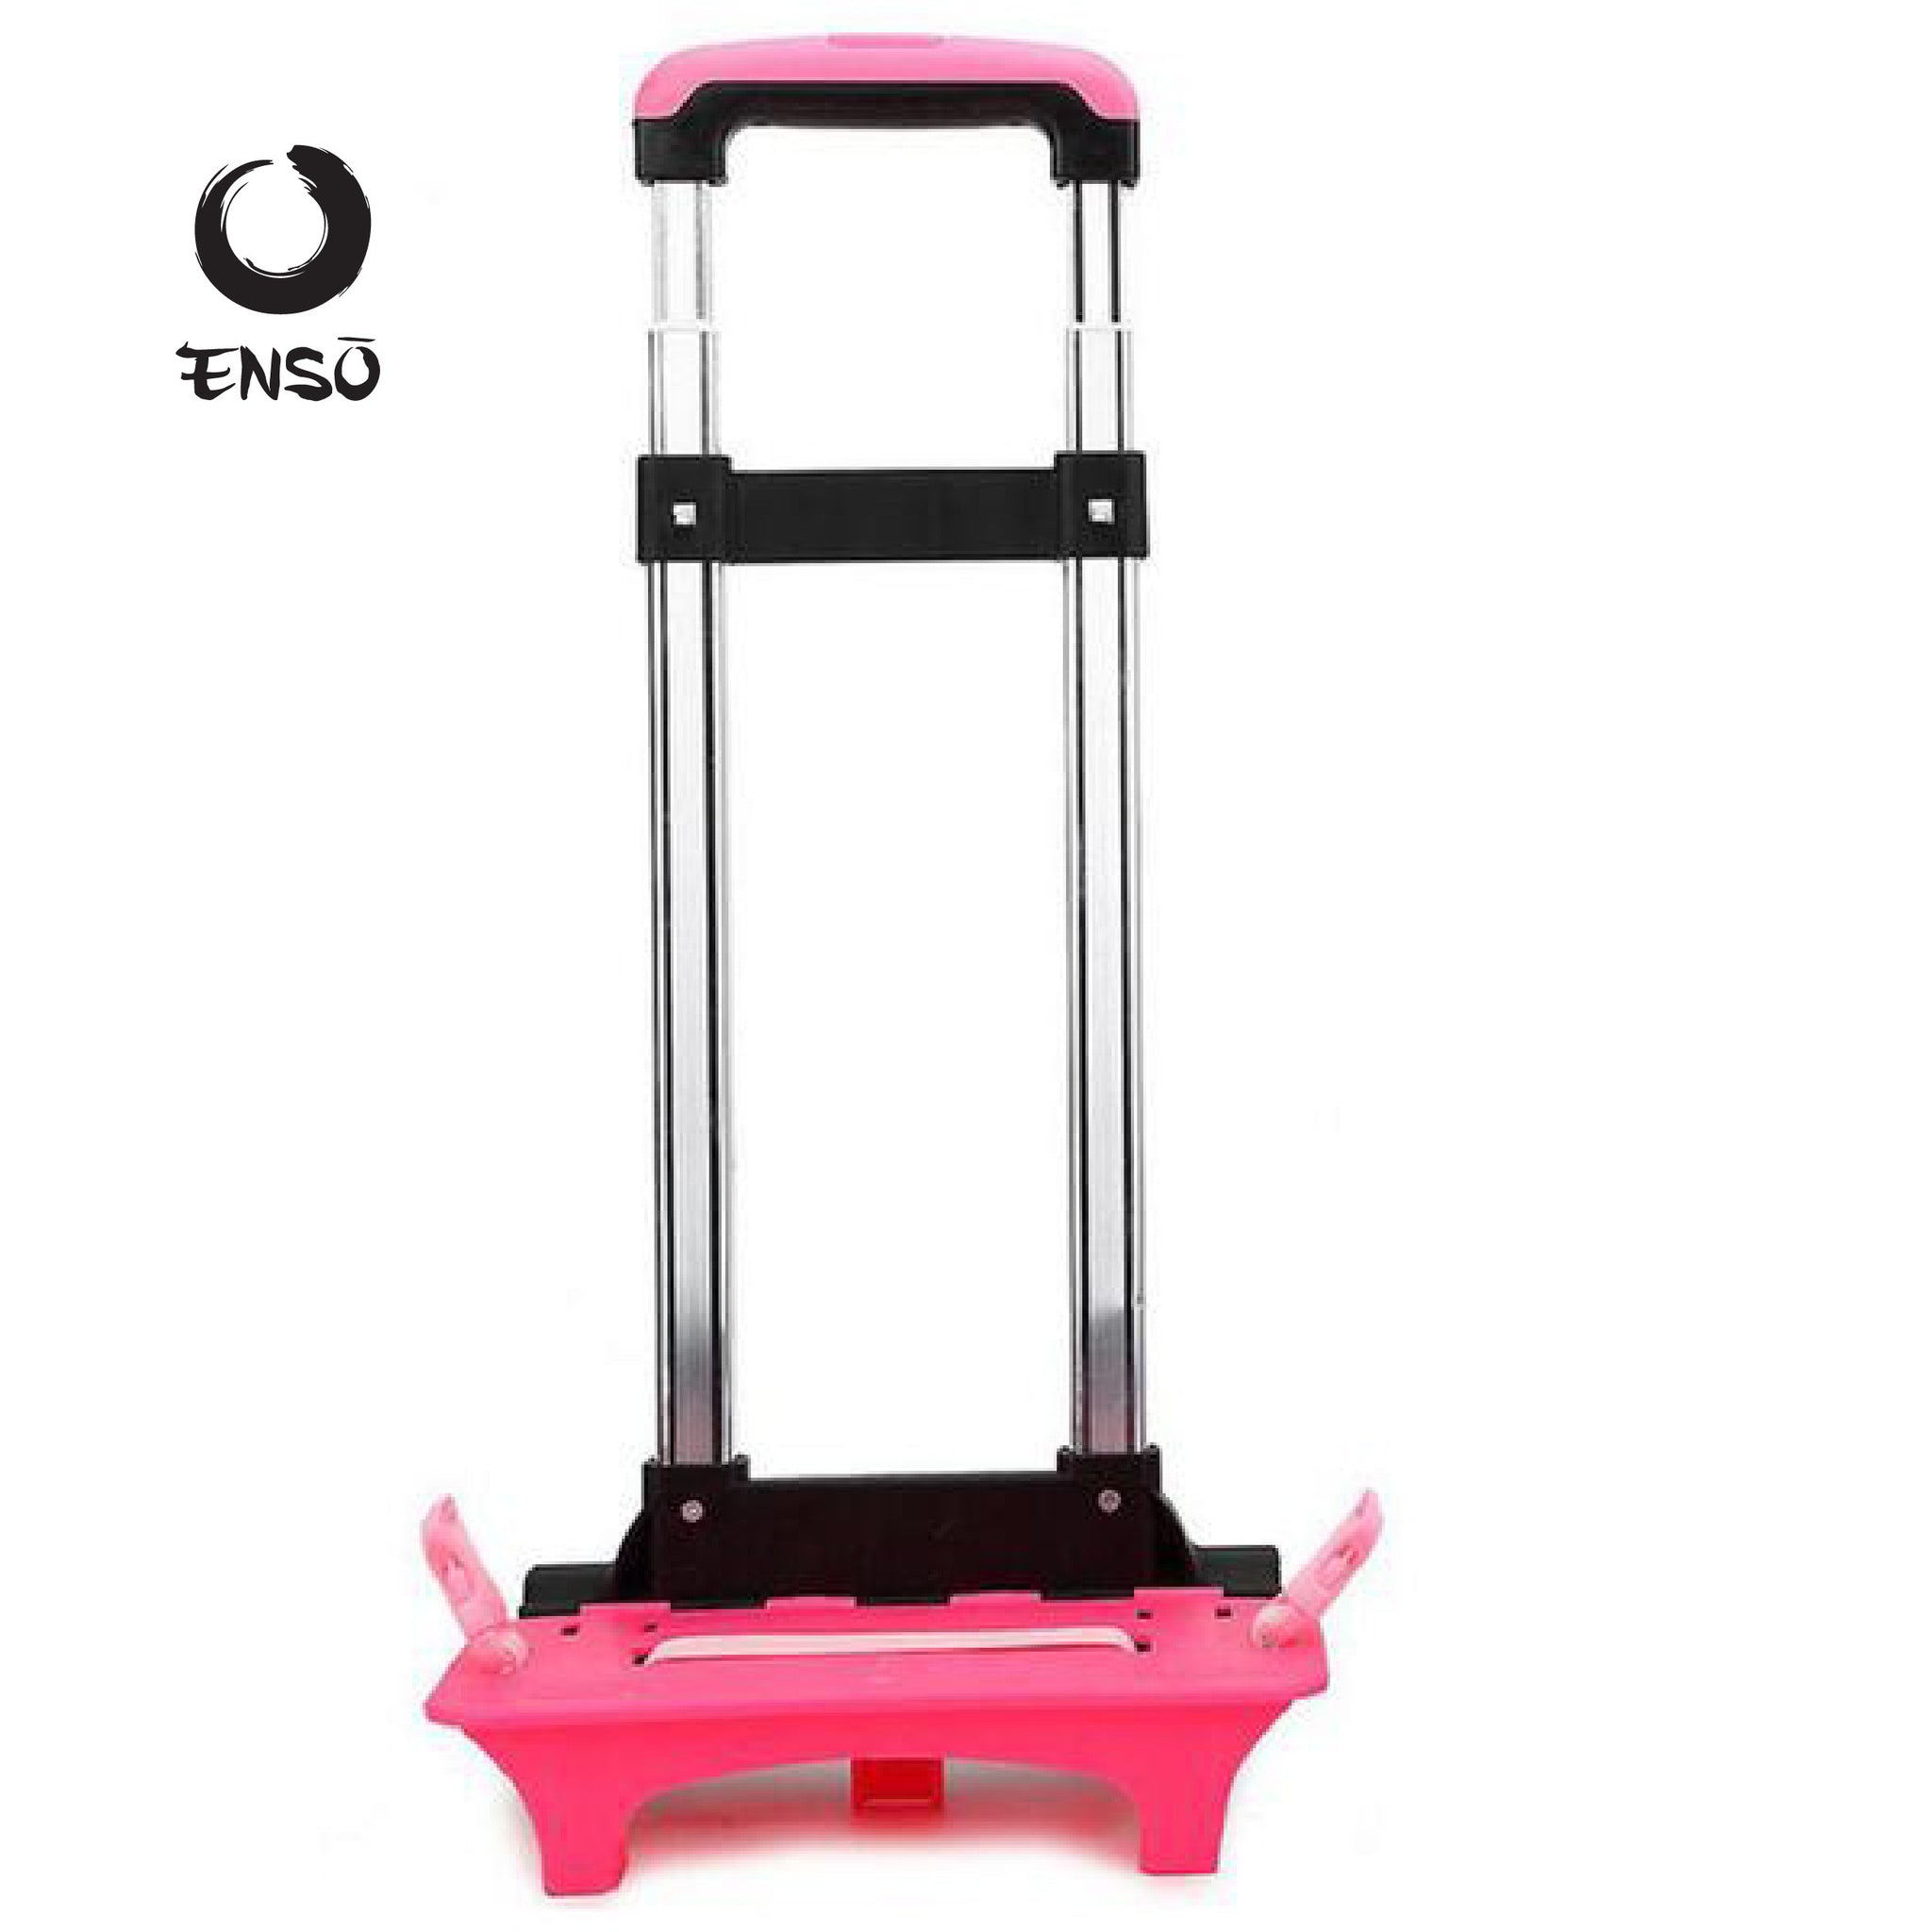 enso telescoping caddy red pink